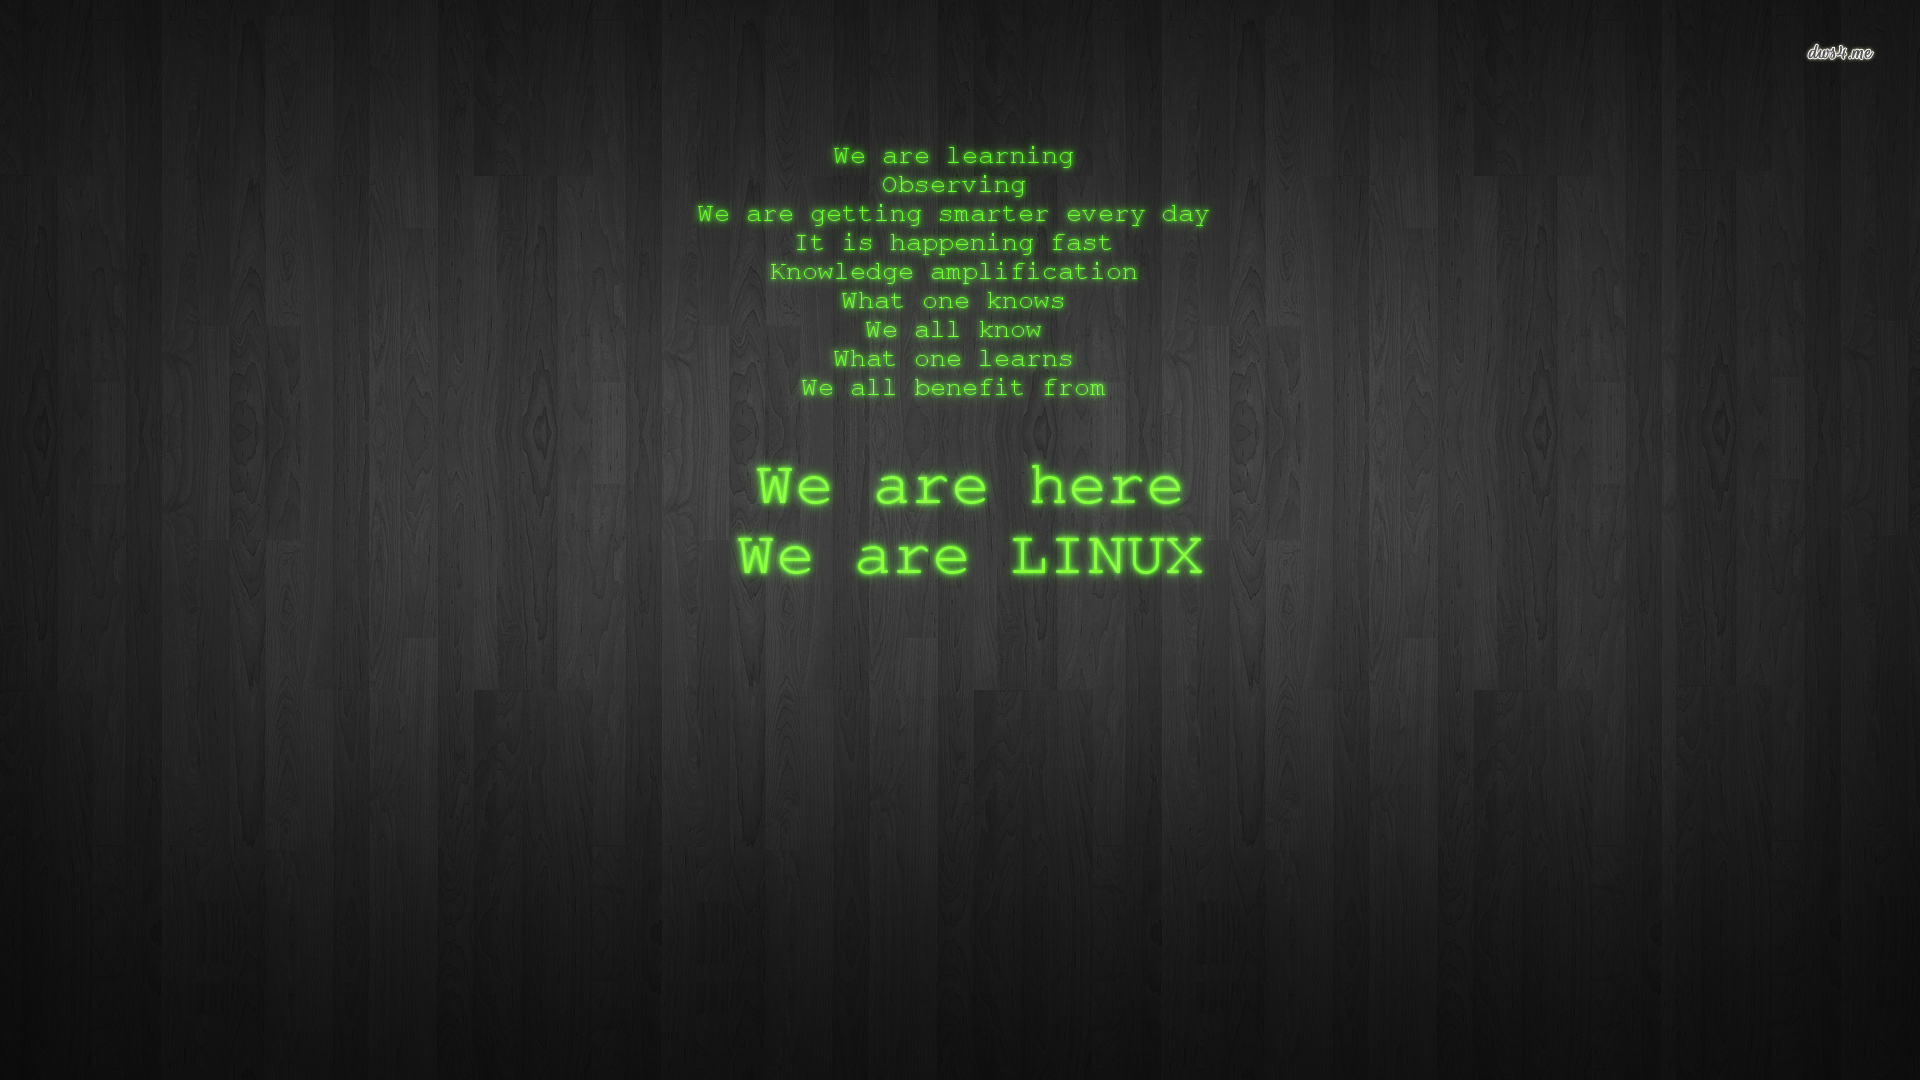 linux wallpaper 7 Cool Backgrounds